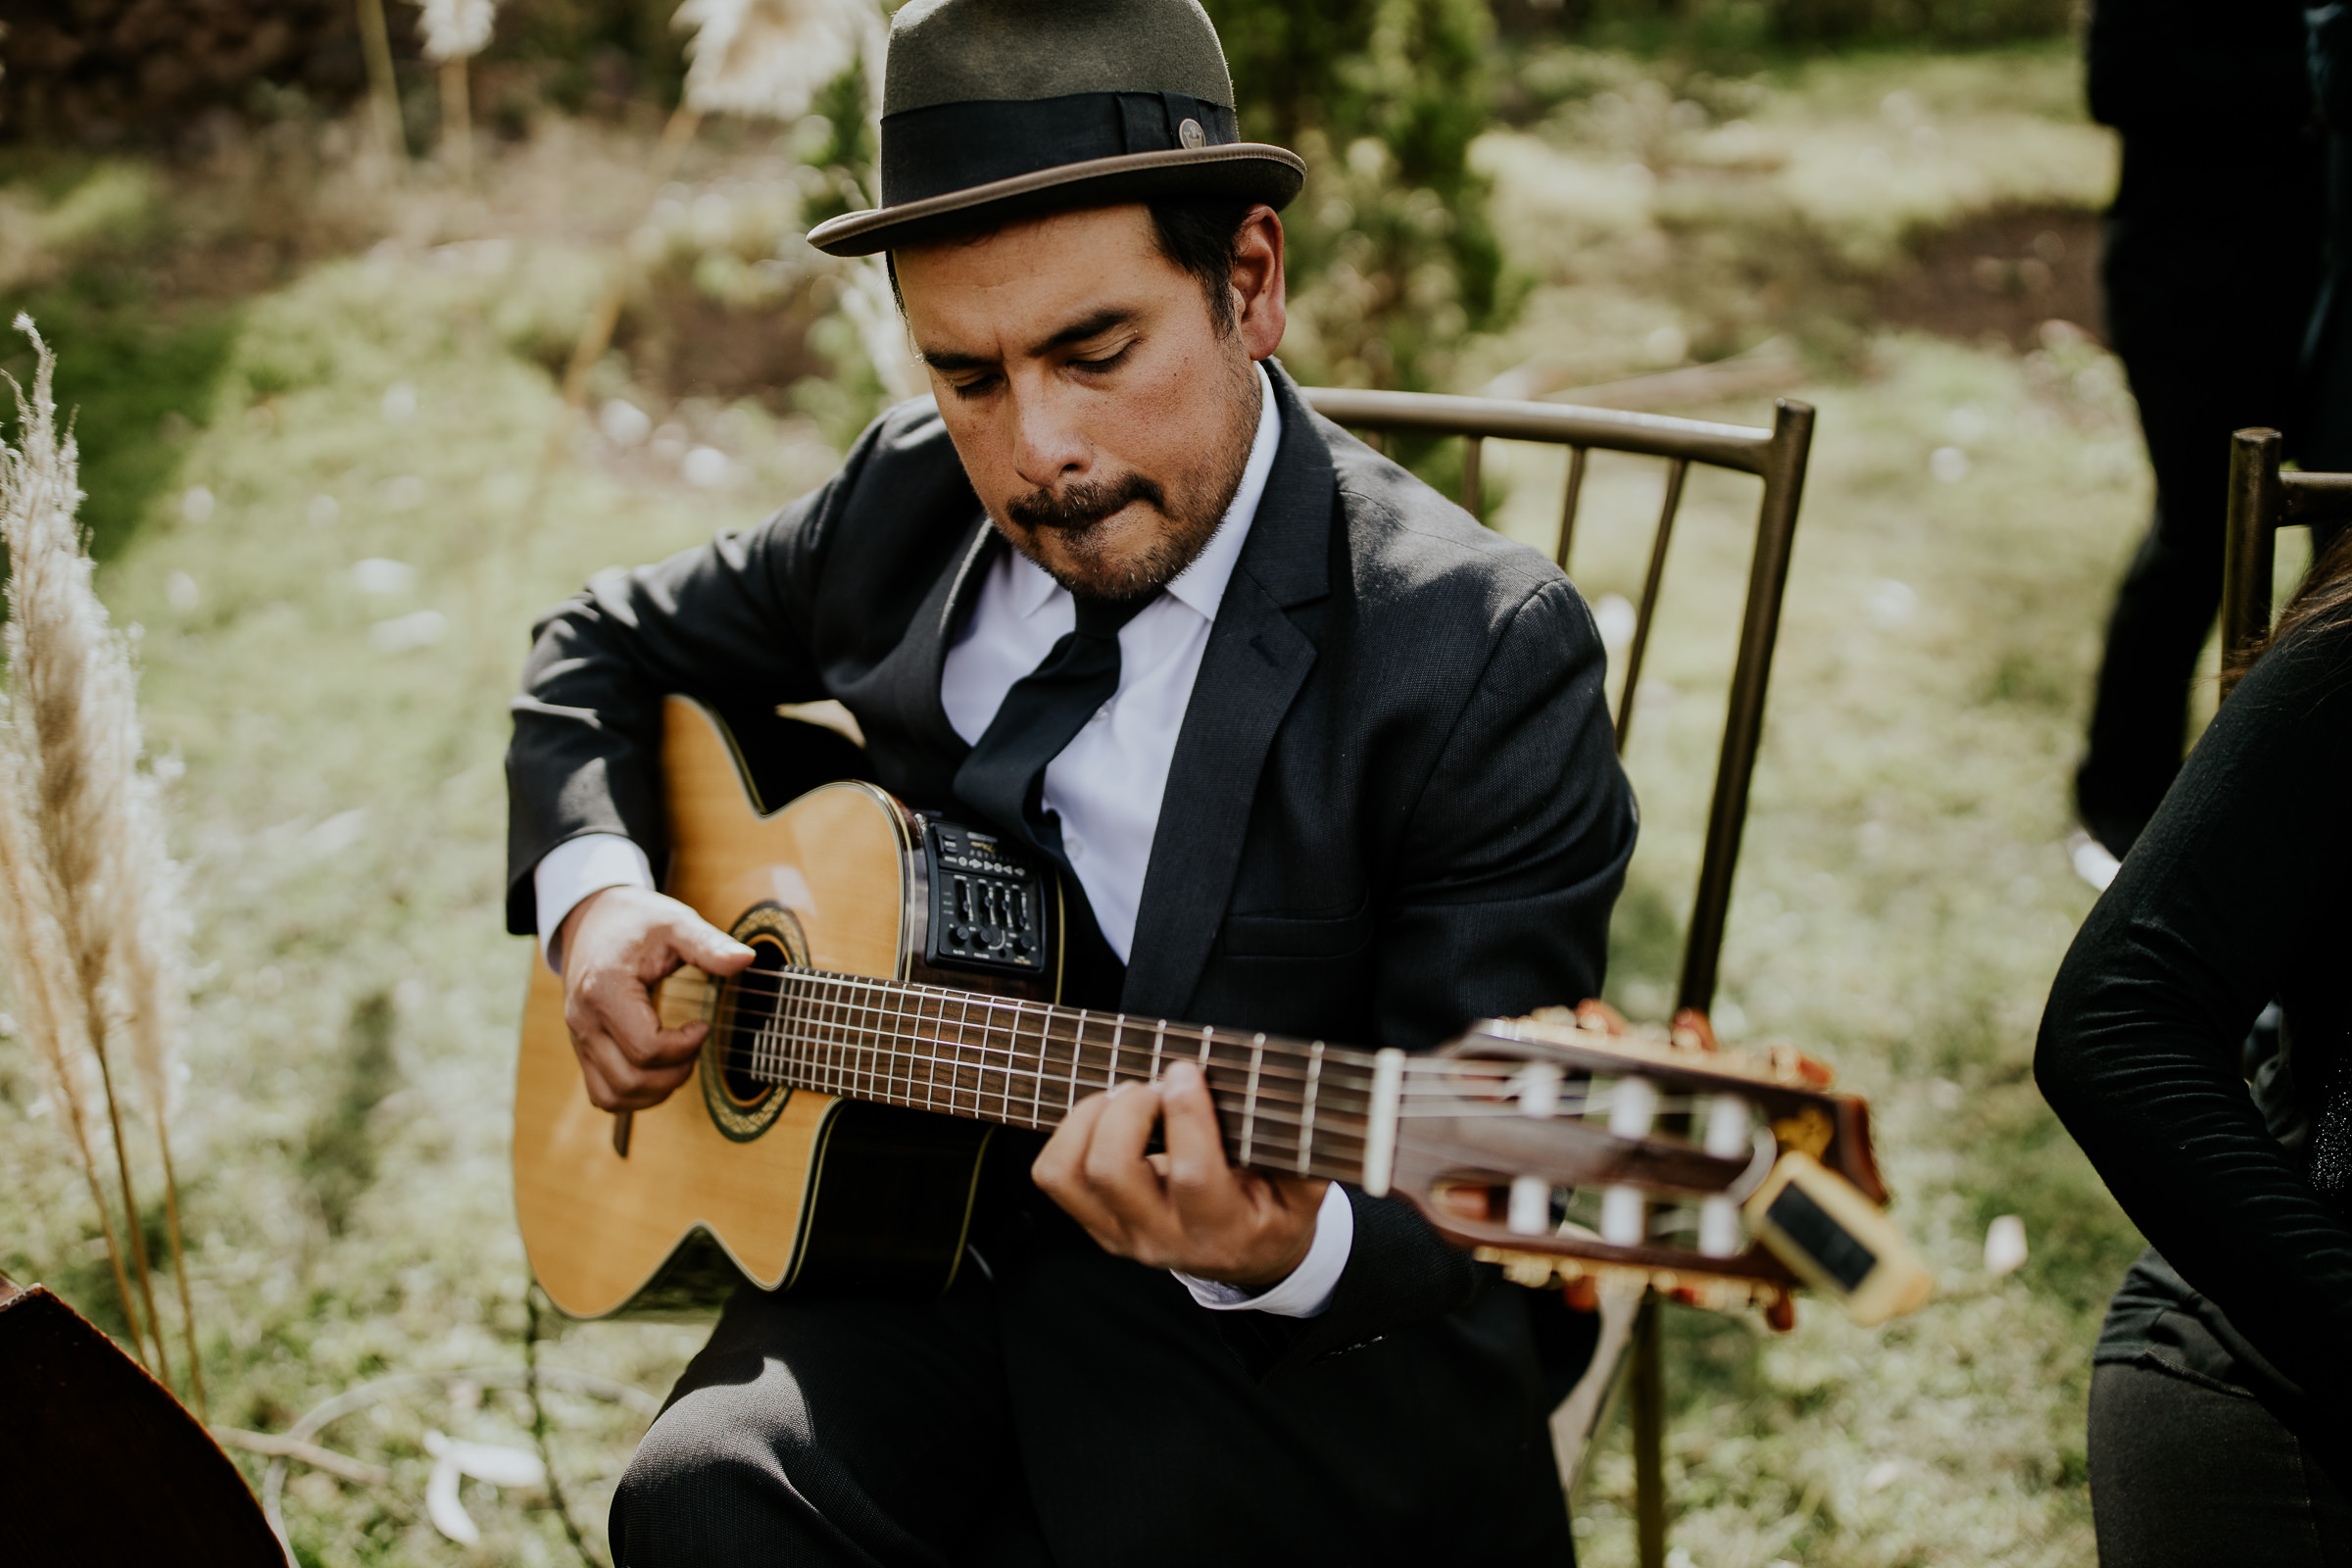 man playing guitar at a wedding ceremony